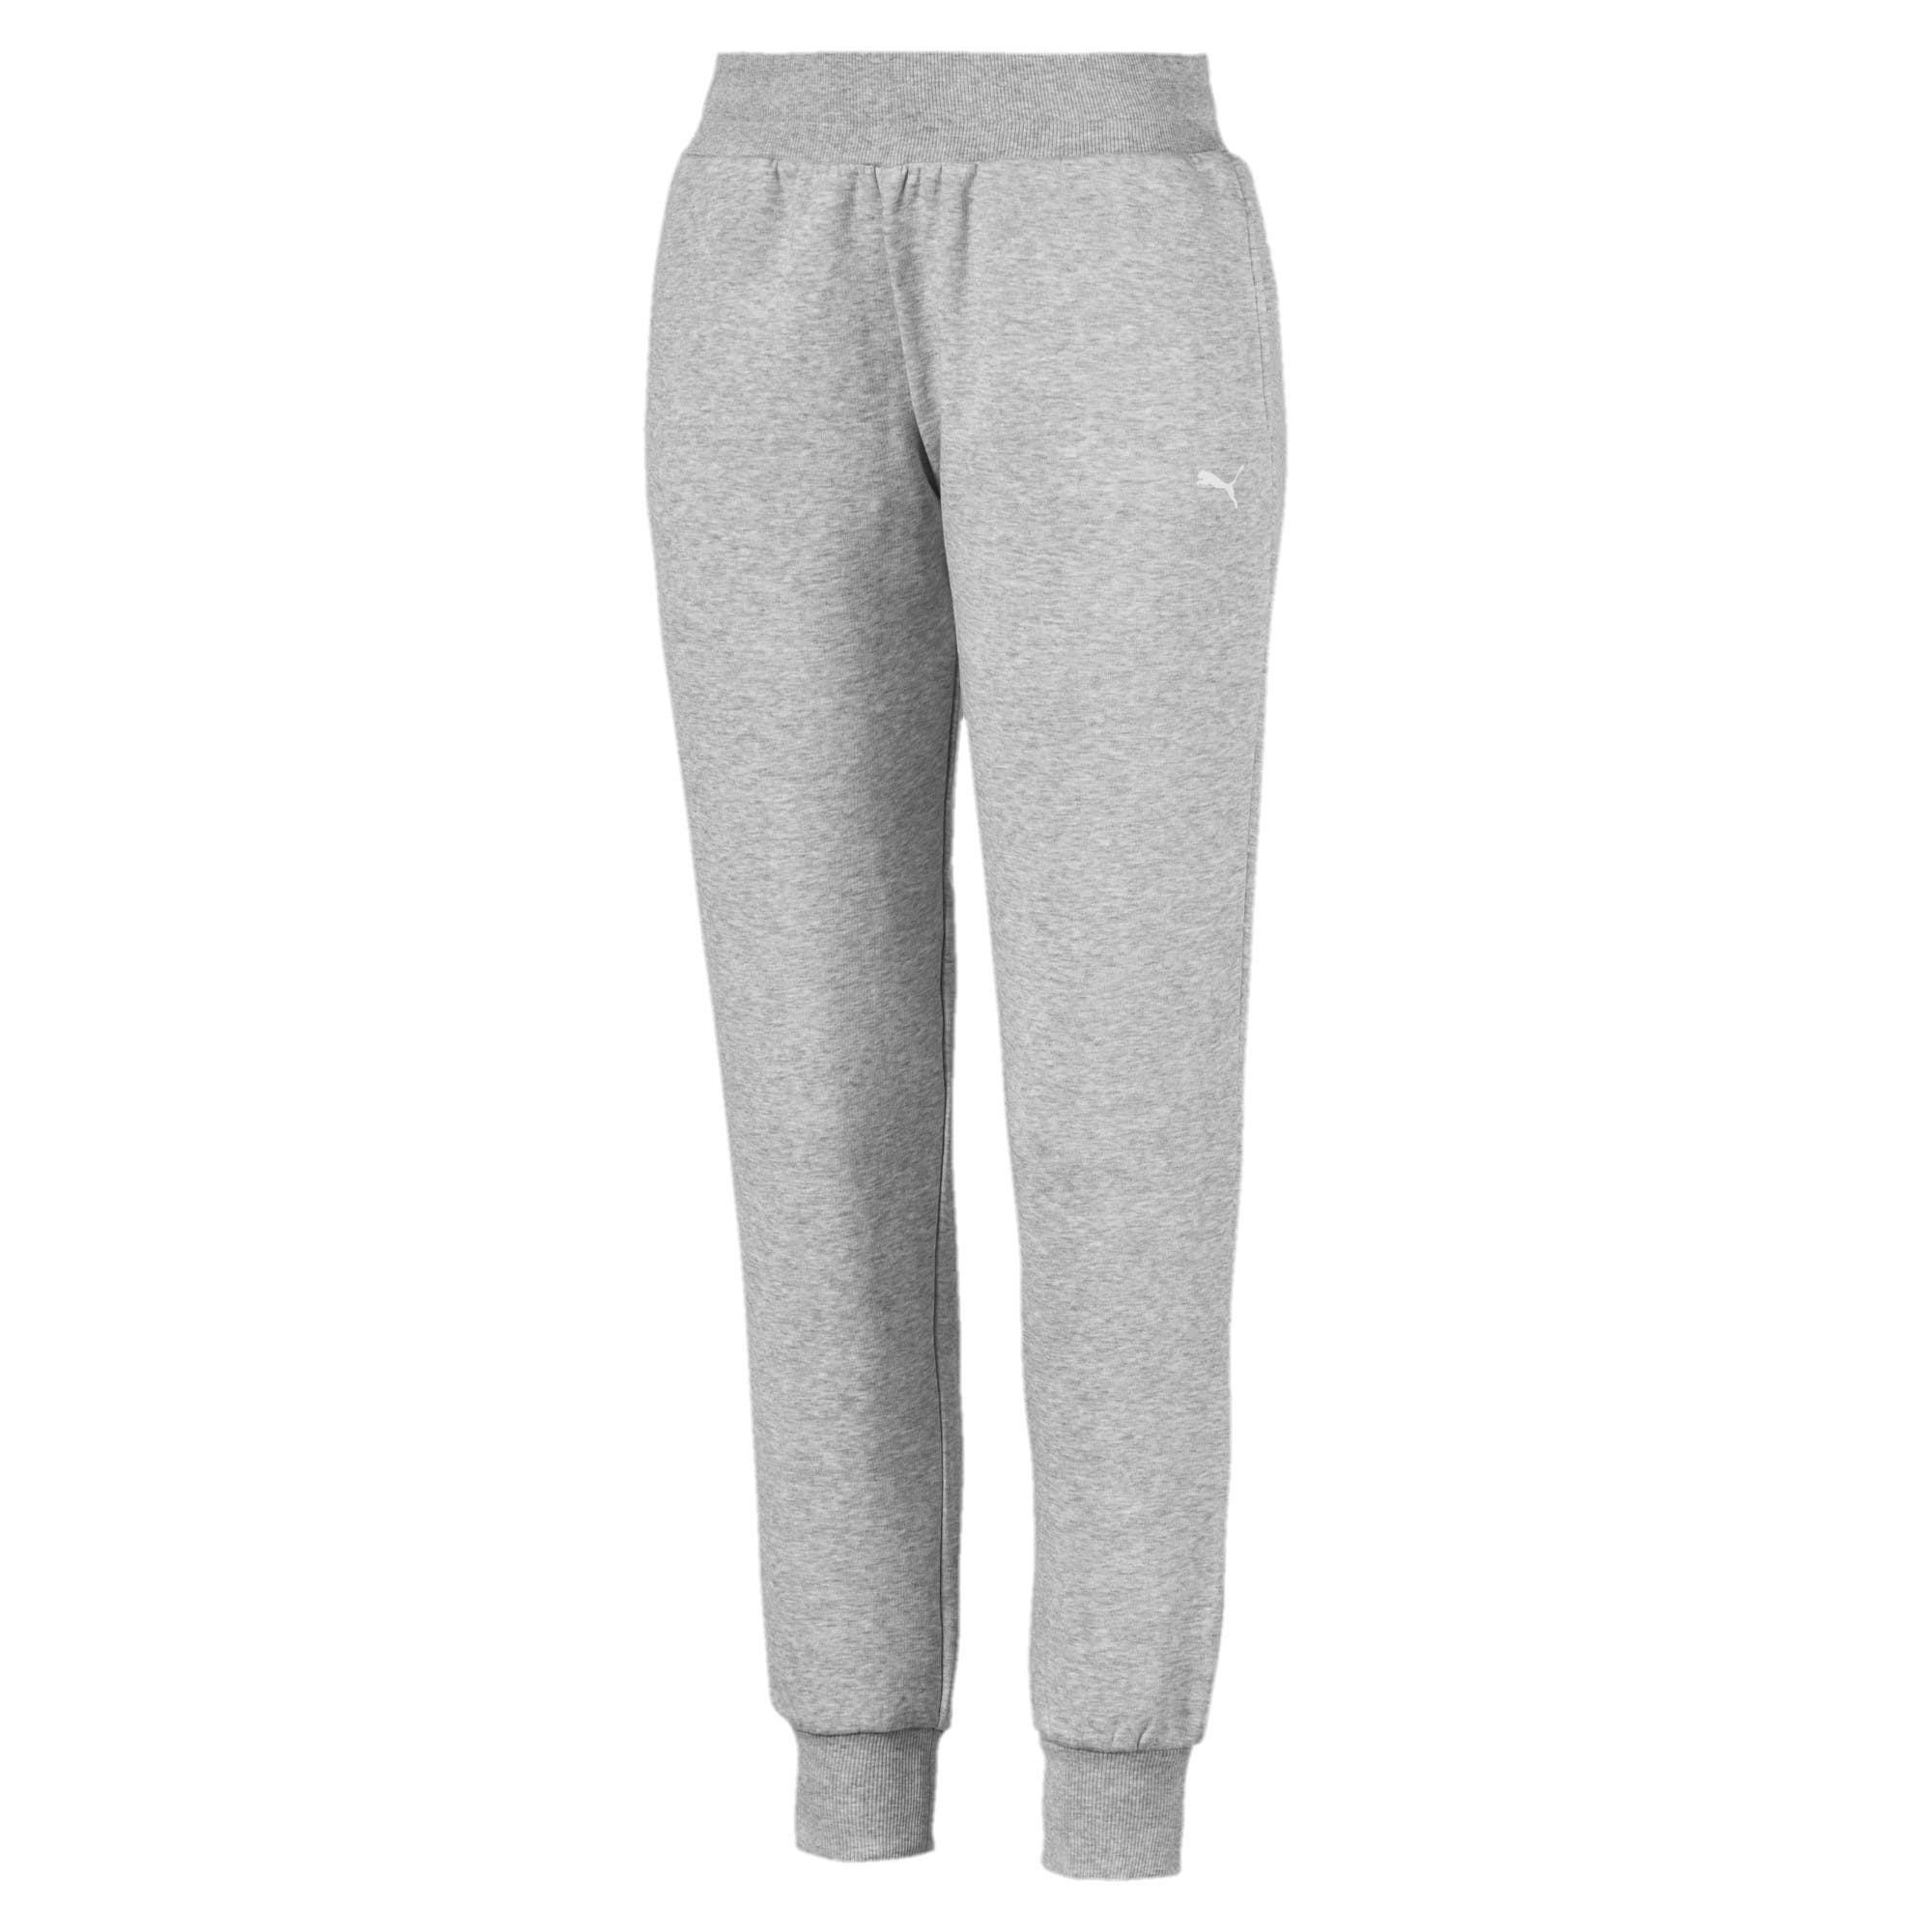 Thumbnail 1 of Knitted Women's Pants, Light Gray Heather, medium-IND